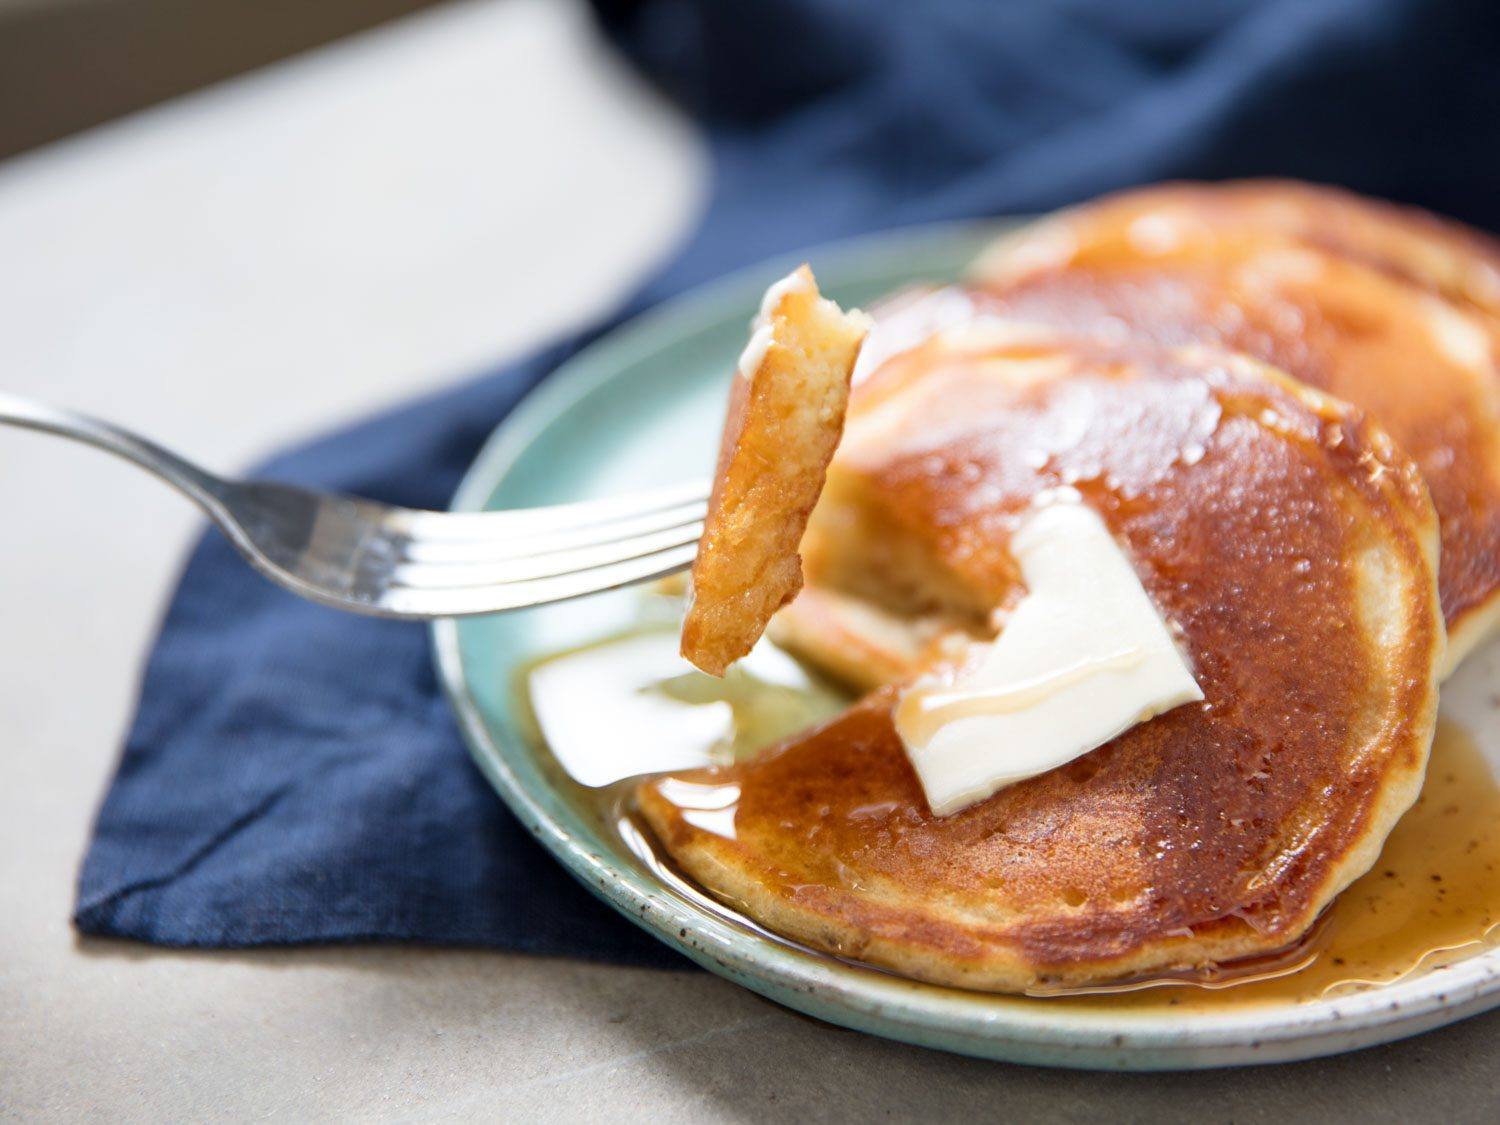 Light and Thin Pancakes From Homemade, Shelf-Stable Pancake Mix